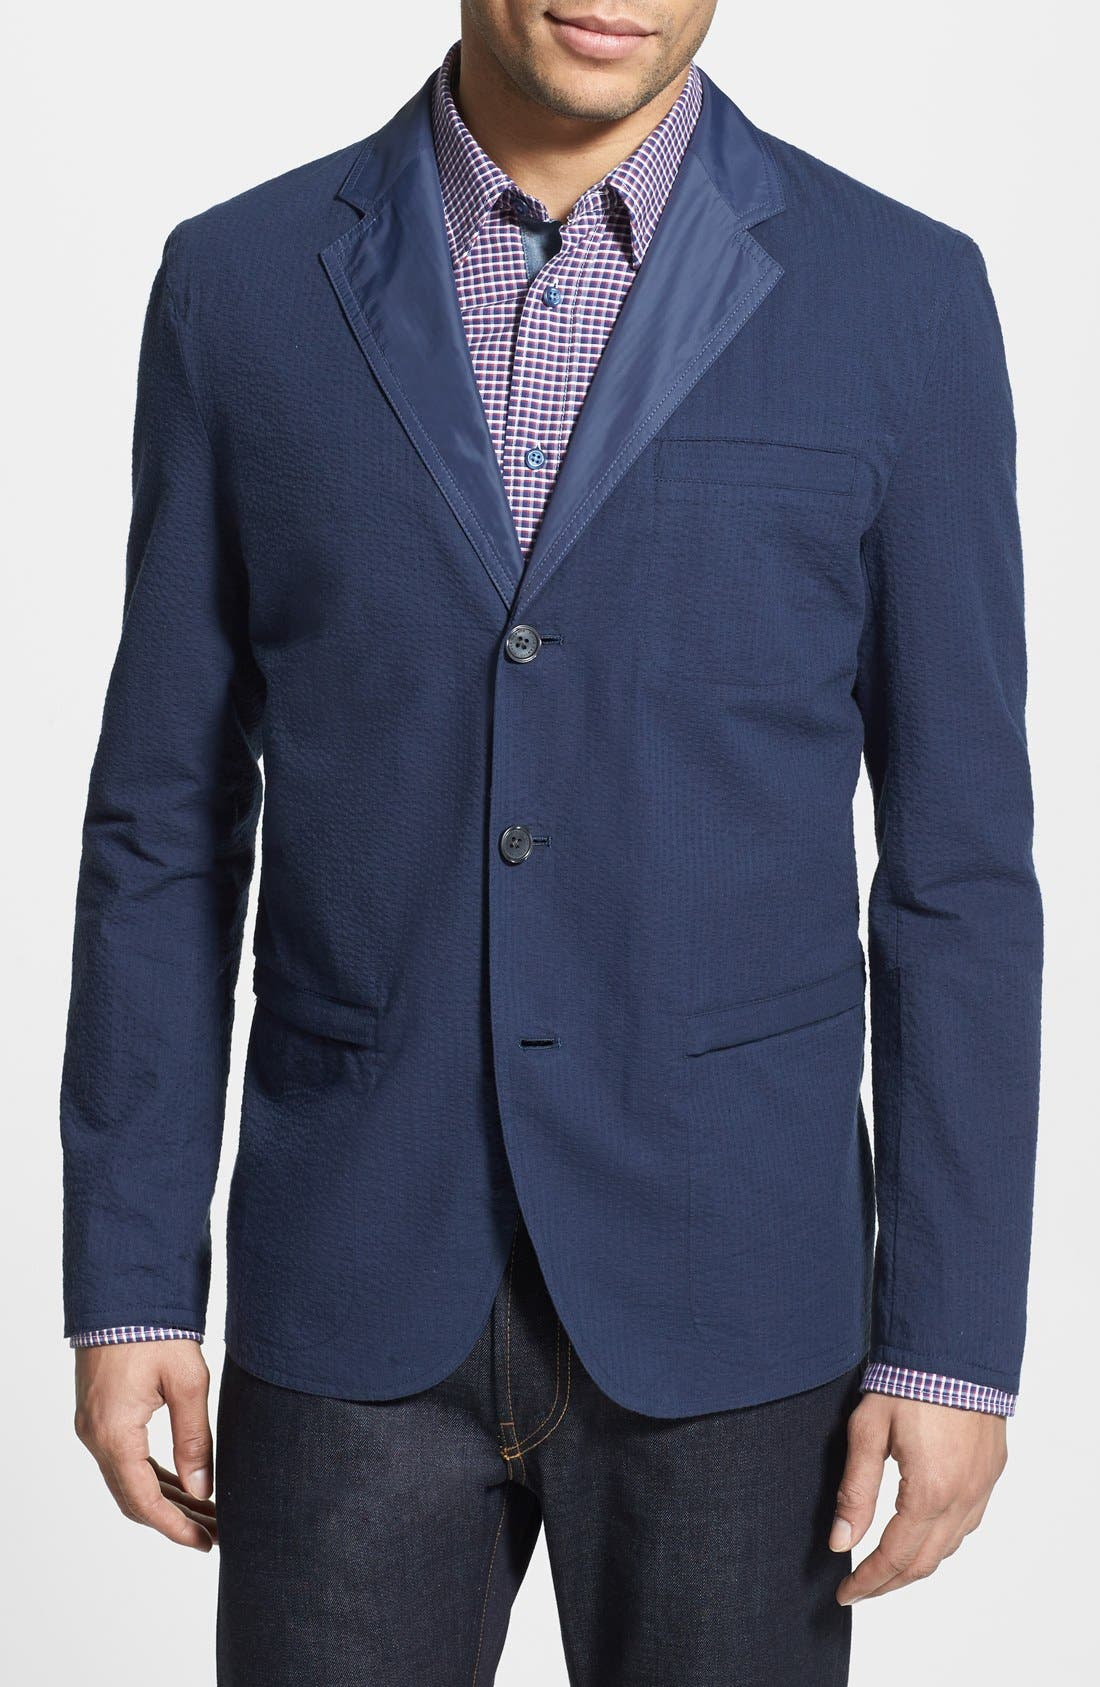 Main Image - Vince Camuto Slim Fit Reversible Seersucker Blazer